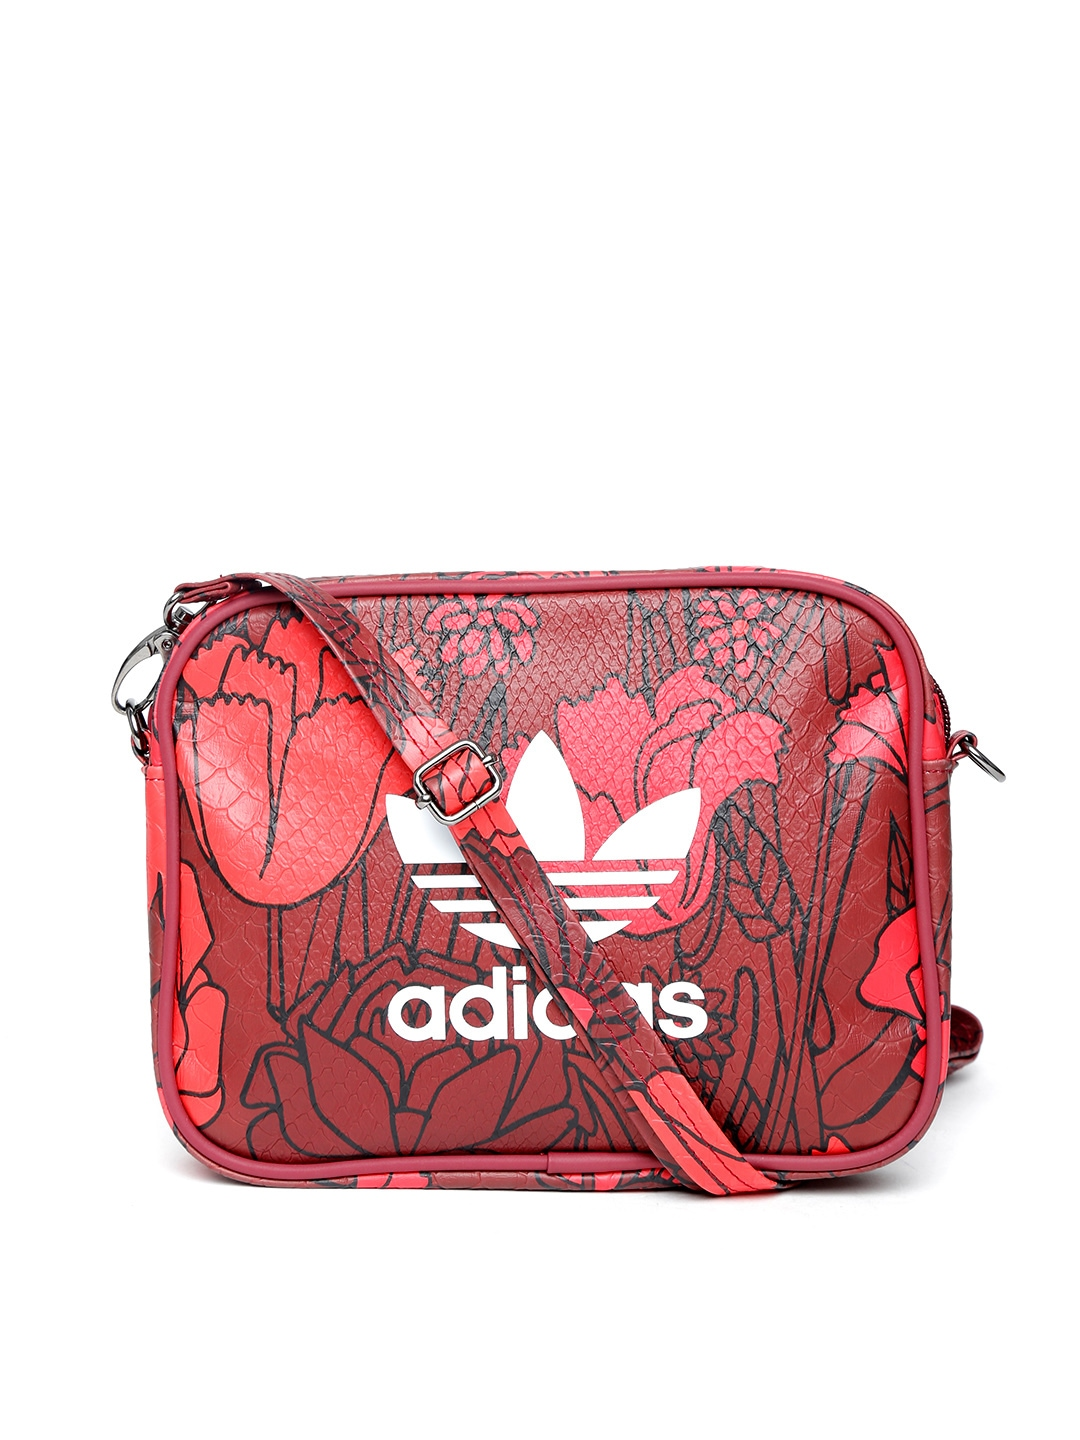 2af3e79989 floral adidas bag on sale > OFF52% Discounts